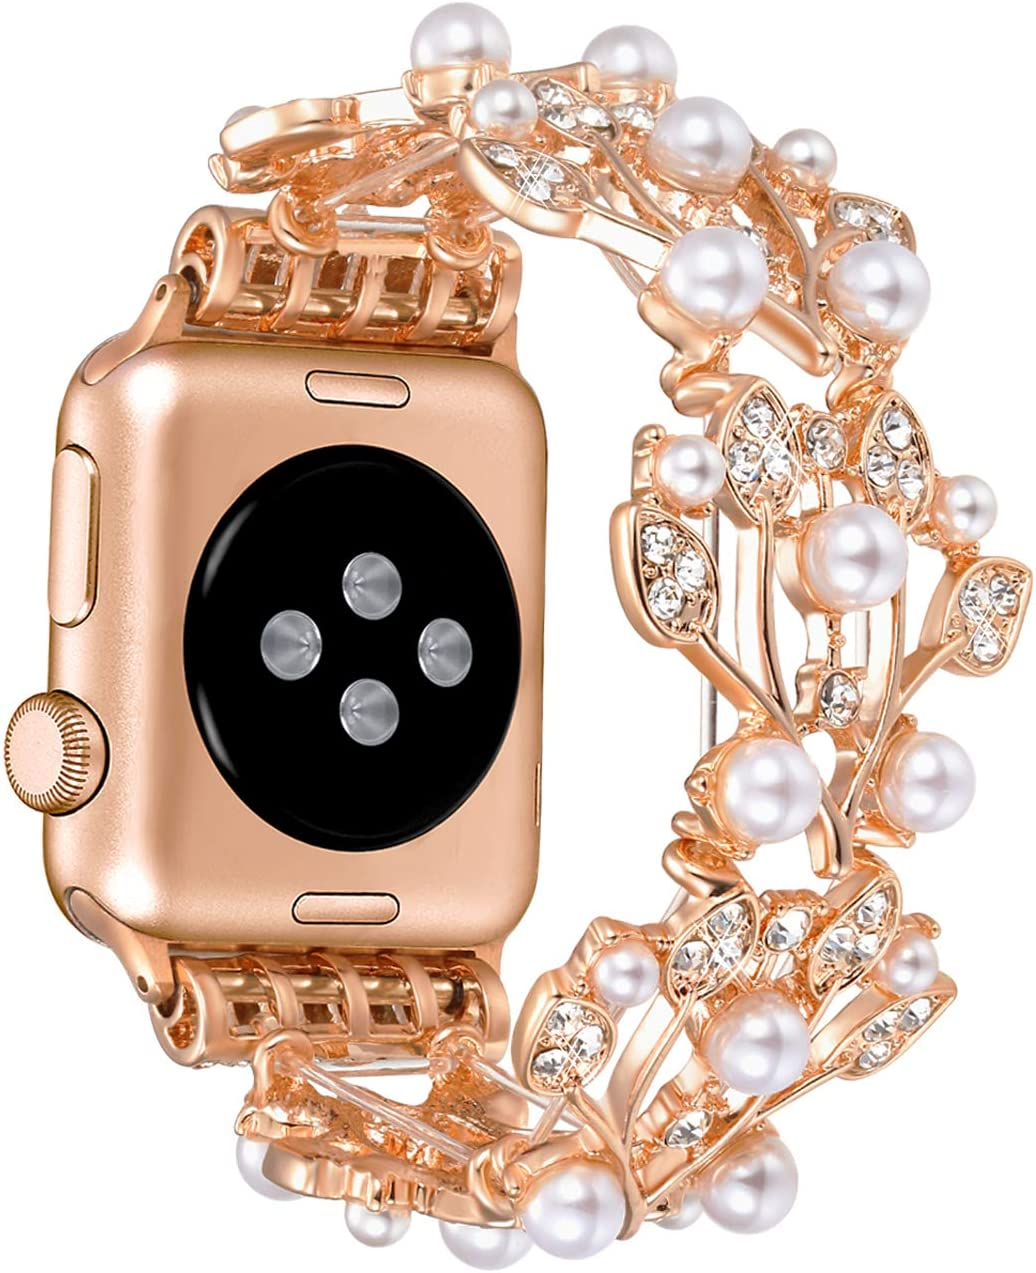 Morning Tree Christmas Compatible for Apple Watch Band 38mm/40mm Series 6 SE 5 4 3 2 1 for Women/Girls, Iwatch Bling Bracelet Pearl Diamond Metal Elastic Jewelry Wristband 42mm/44mm (Rose gold, 38mm/40mm)